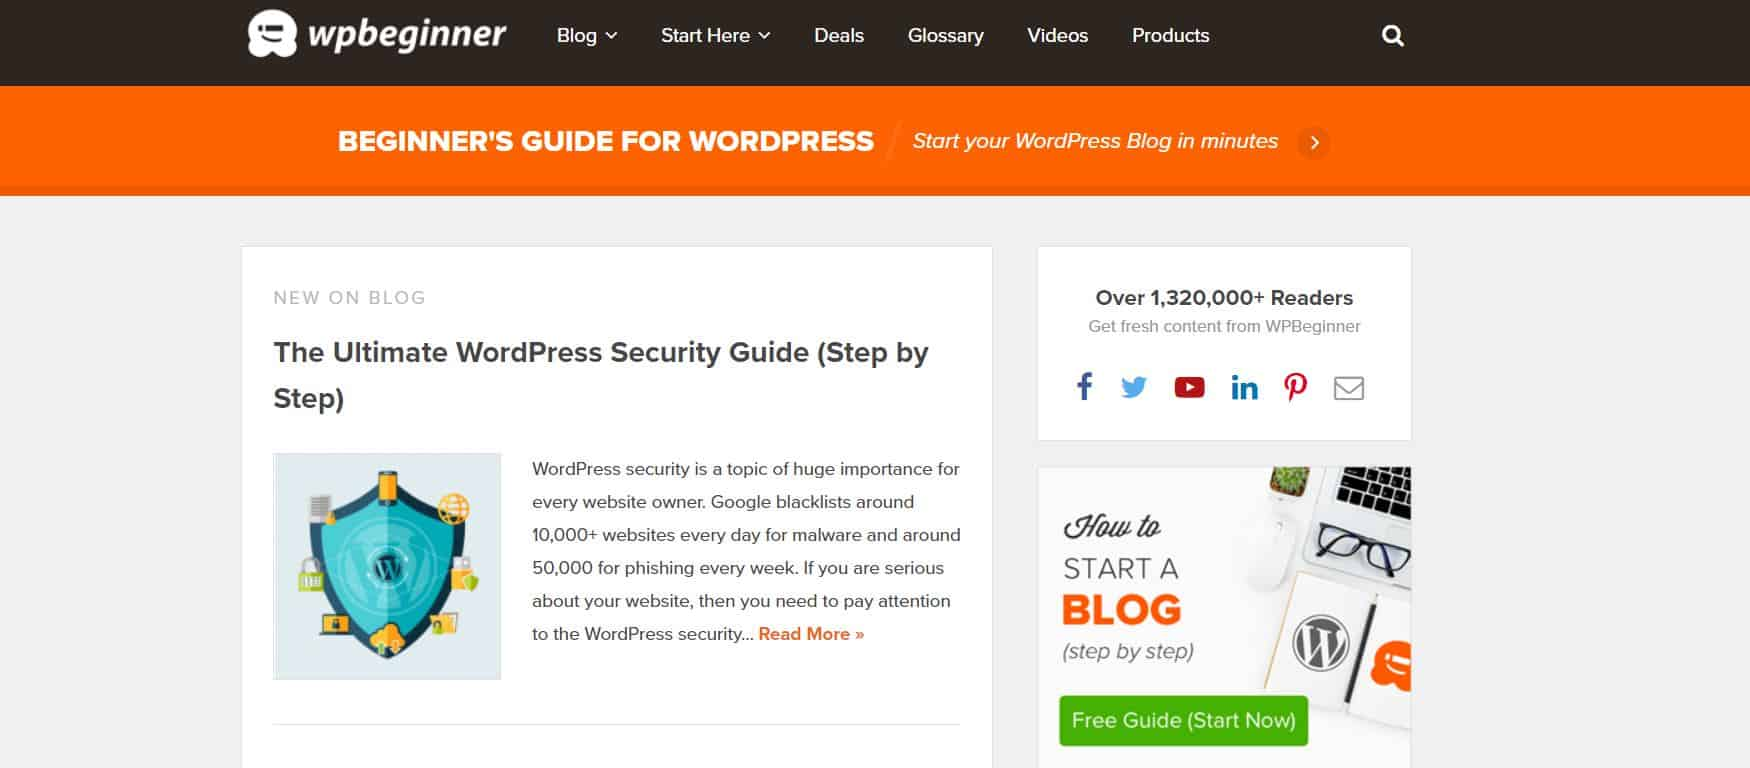 Learn WordPress with WPBeginner